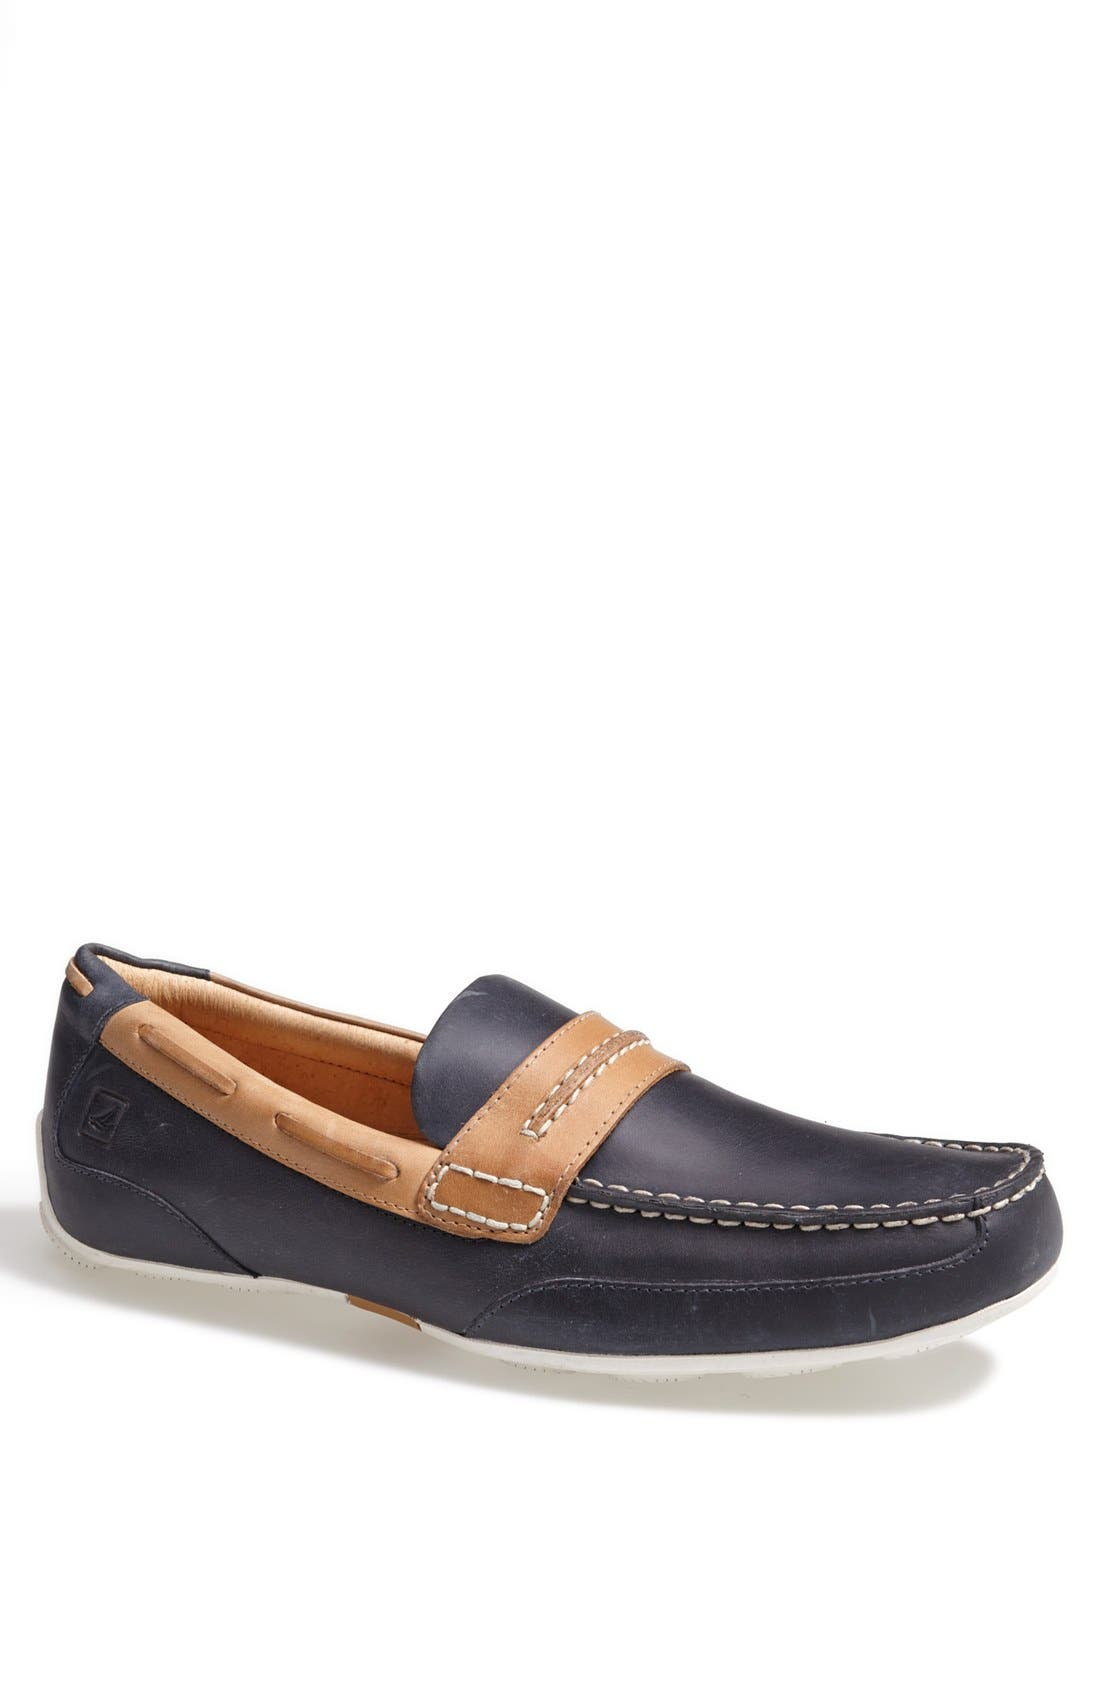 Main Image - Sperry Top-Sider® 'Navigator Suede' Driving Shoe